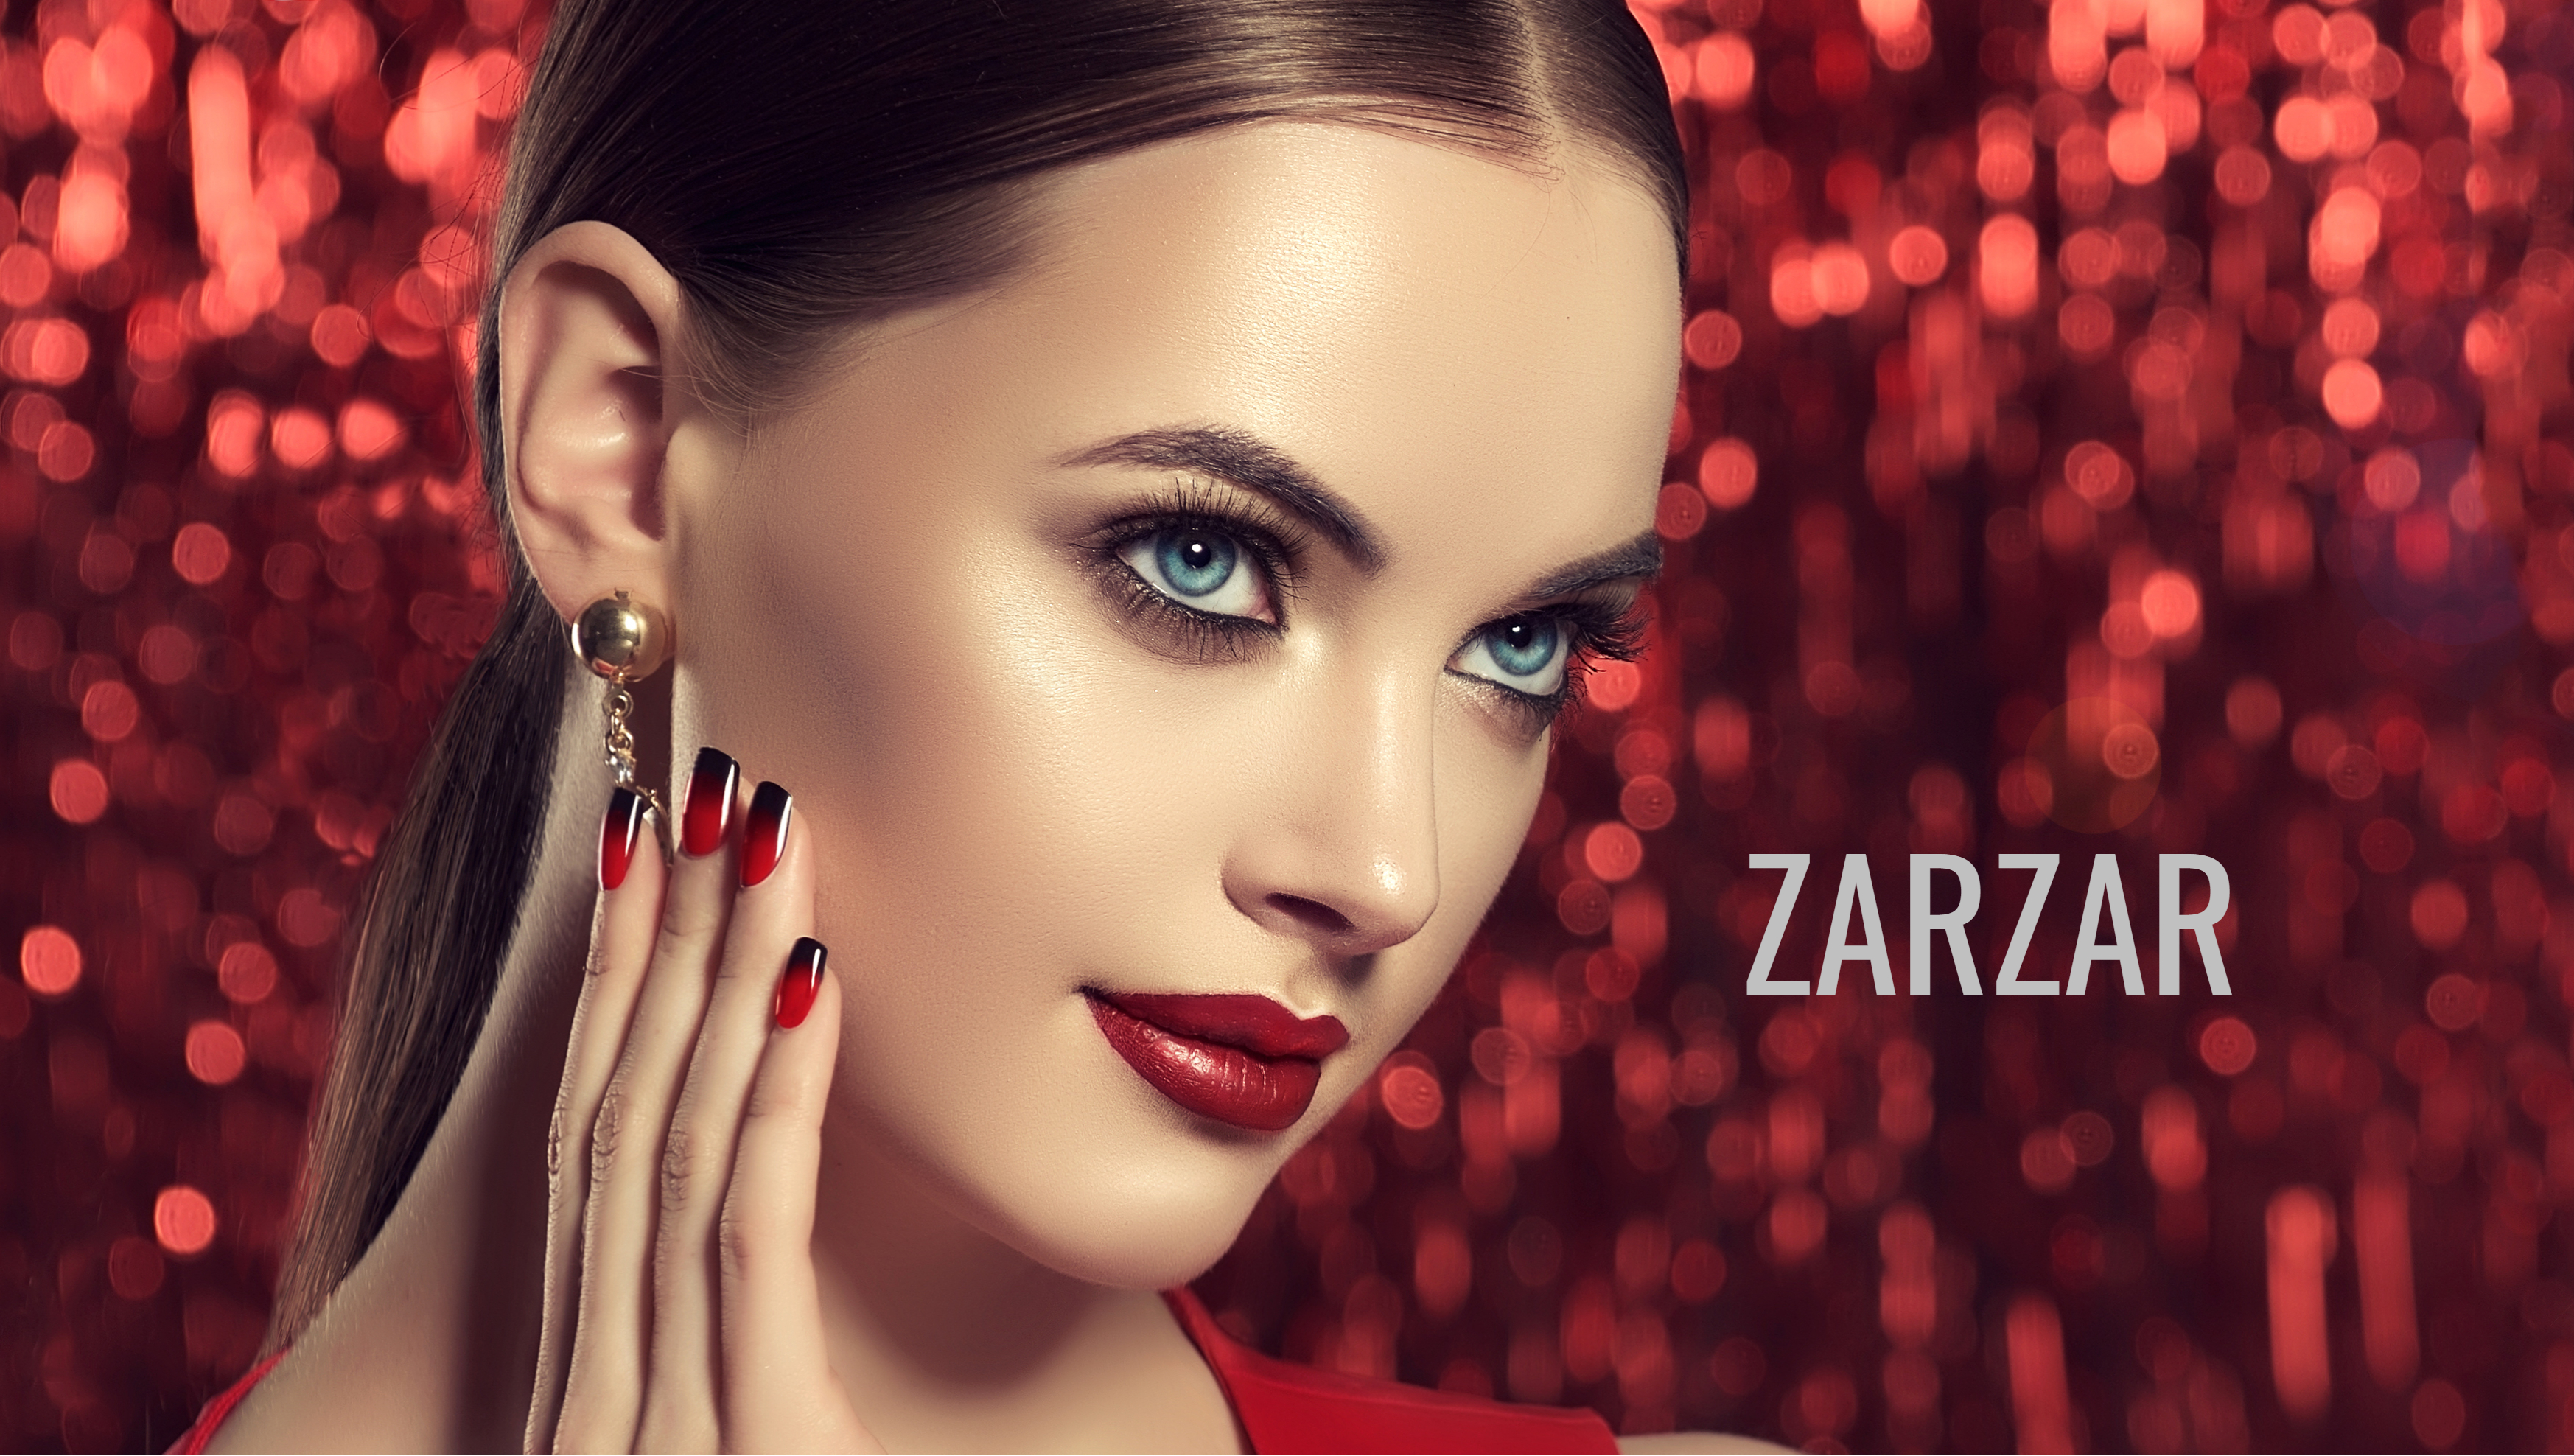 ZARZAR FASHION Beautiful Makeup For Women. Beautiful Sexy Makeup For Girls, Supermodels, & Fashion Models.